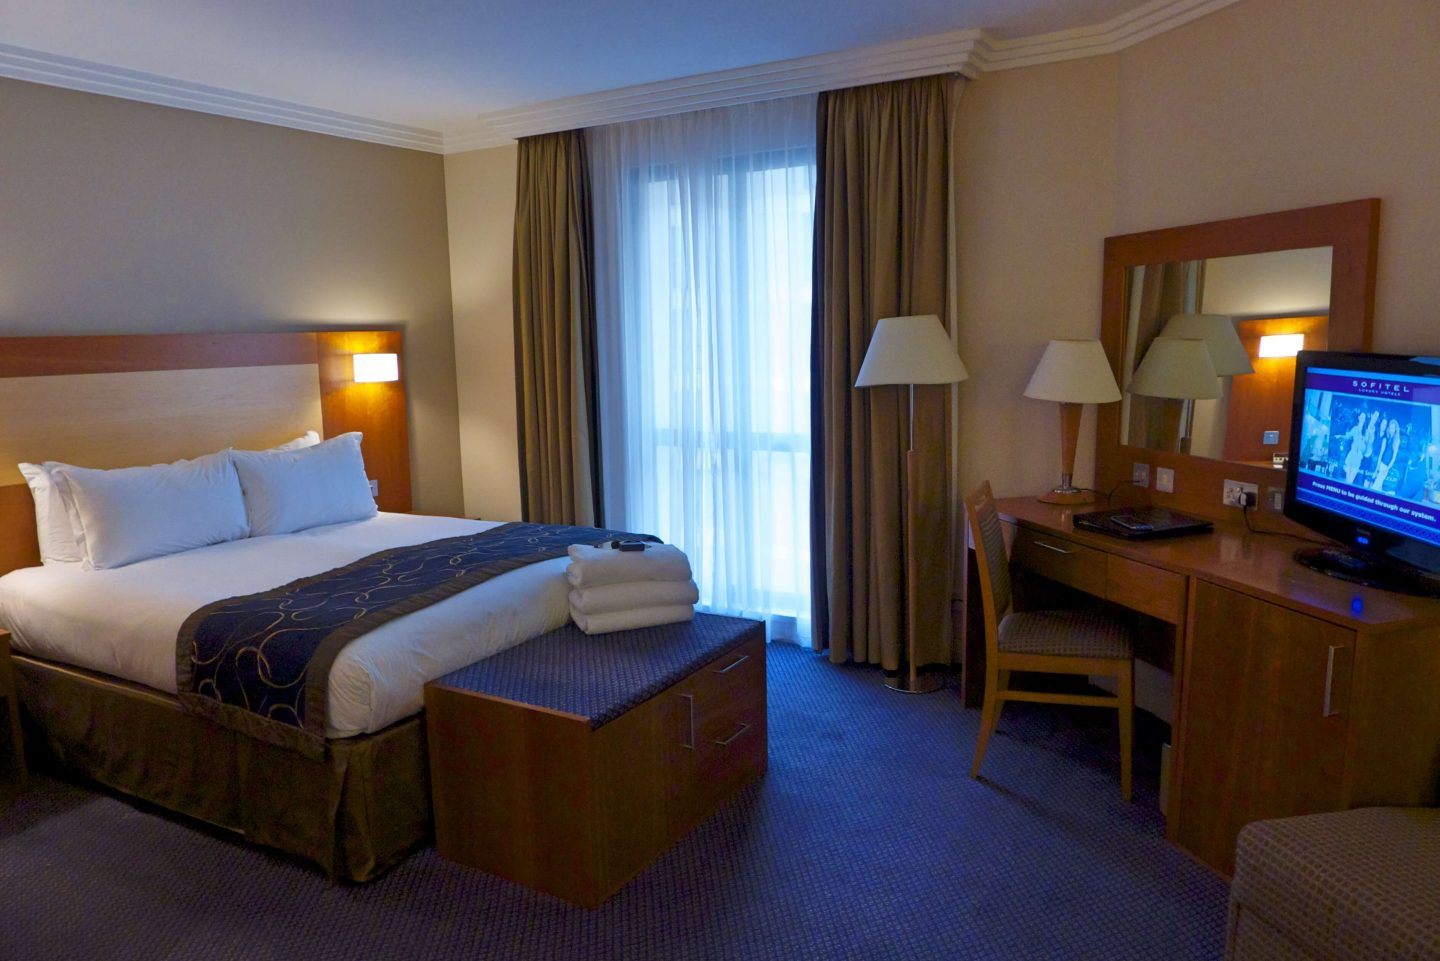 Sofitel London Gatwick Review